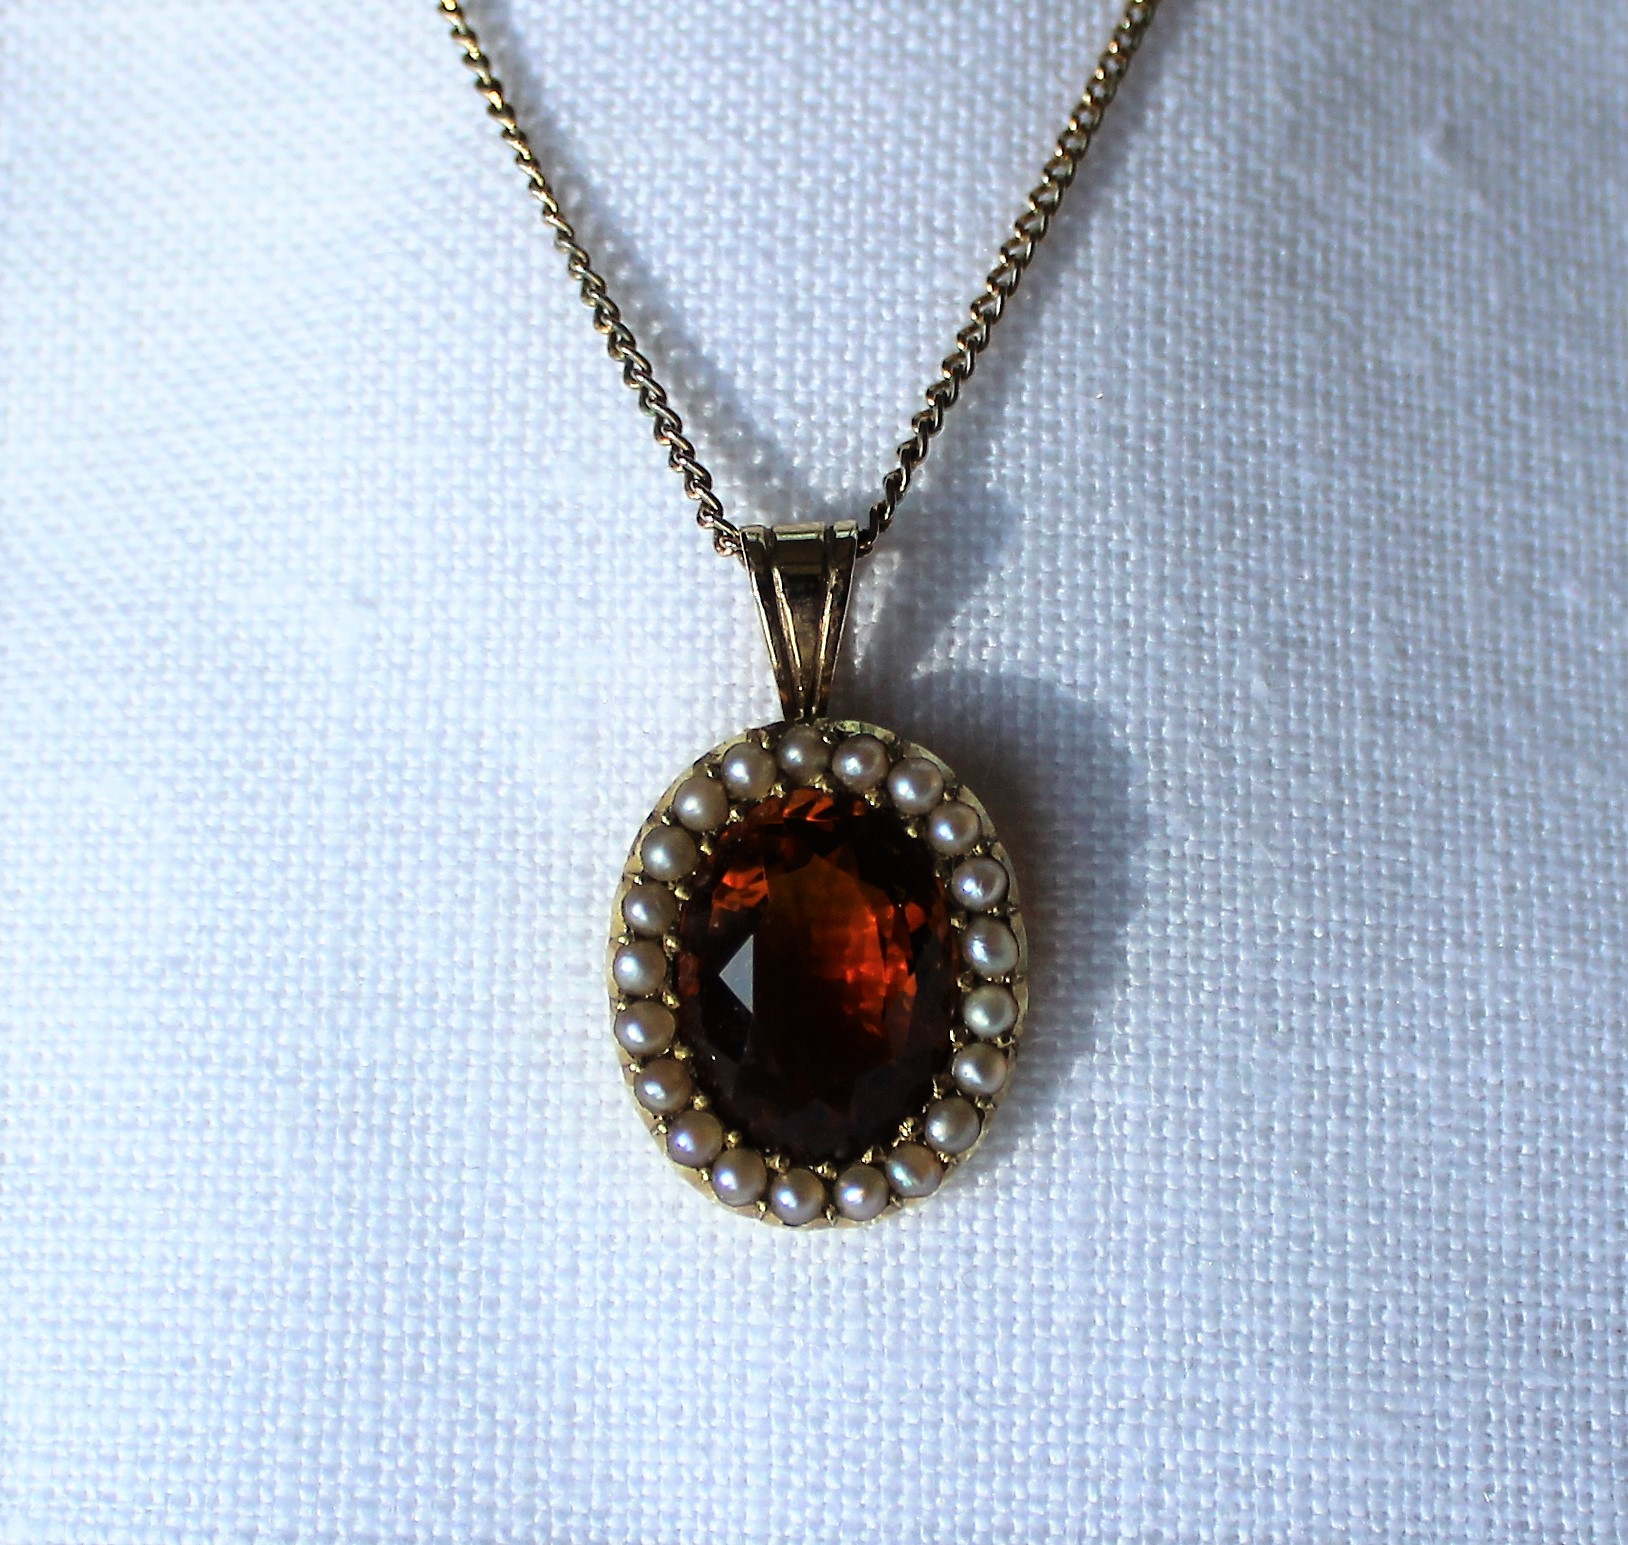 Lot 29 - Estimates: £70 - 90 - A 15ct gold citrine and seed pearl pendant set with an oval faceted citrine surrounded by seed pearls on a gold plated chain